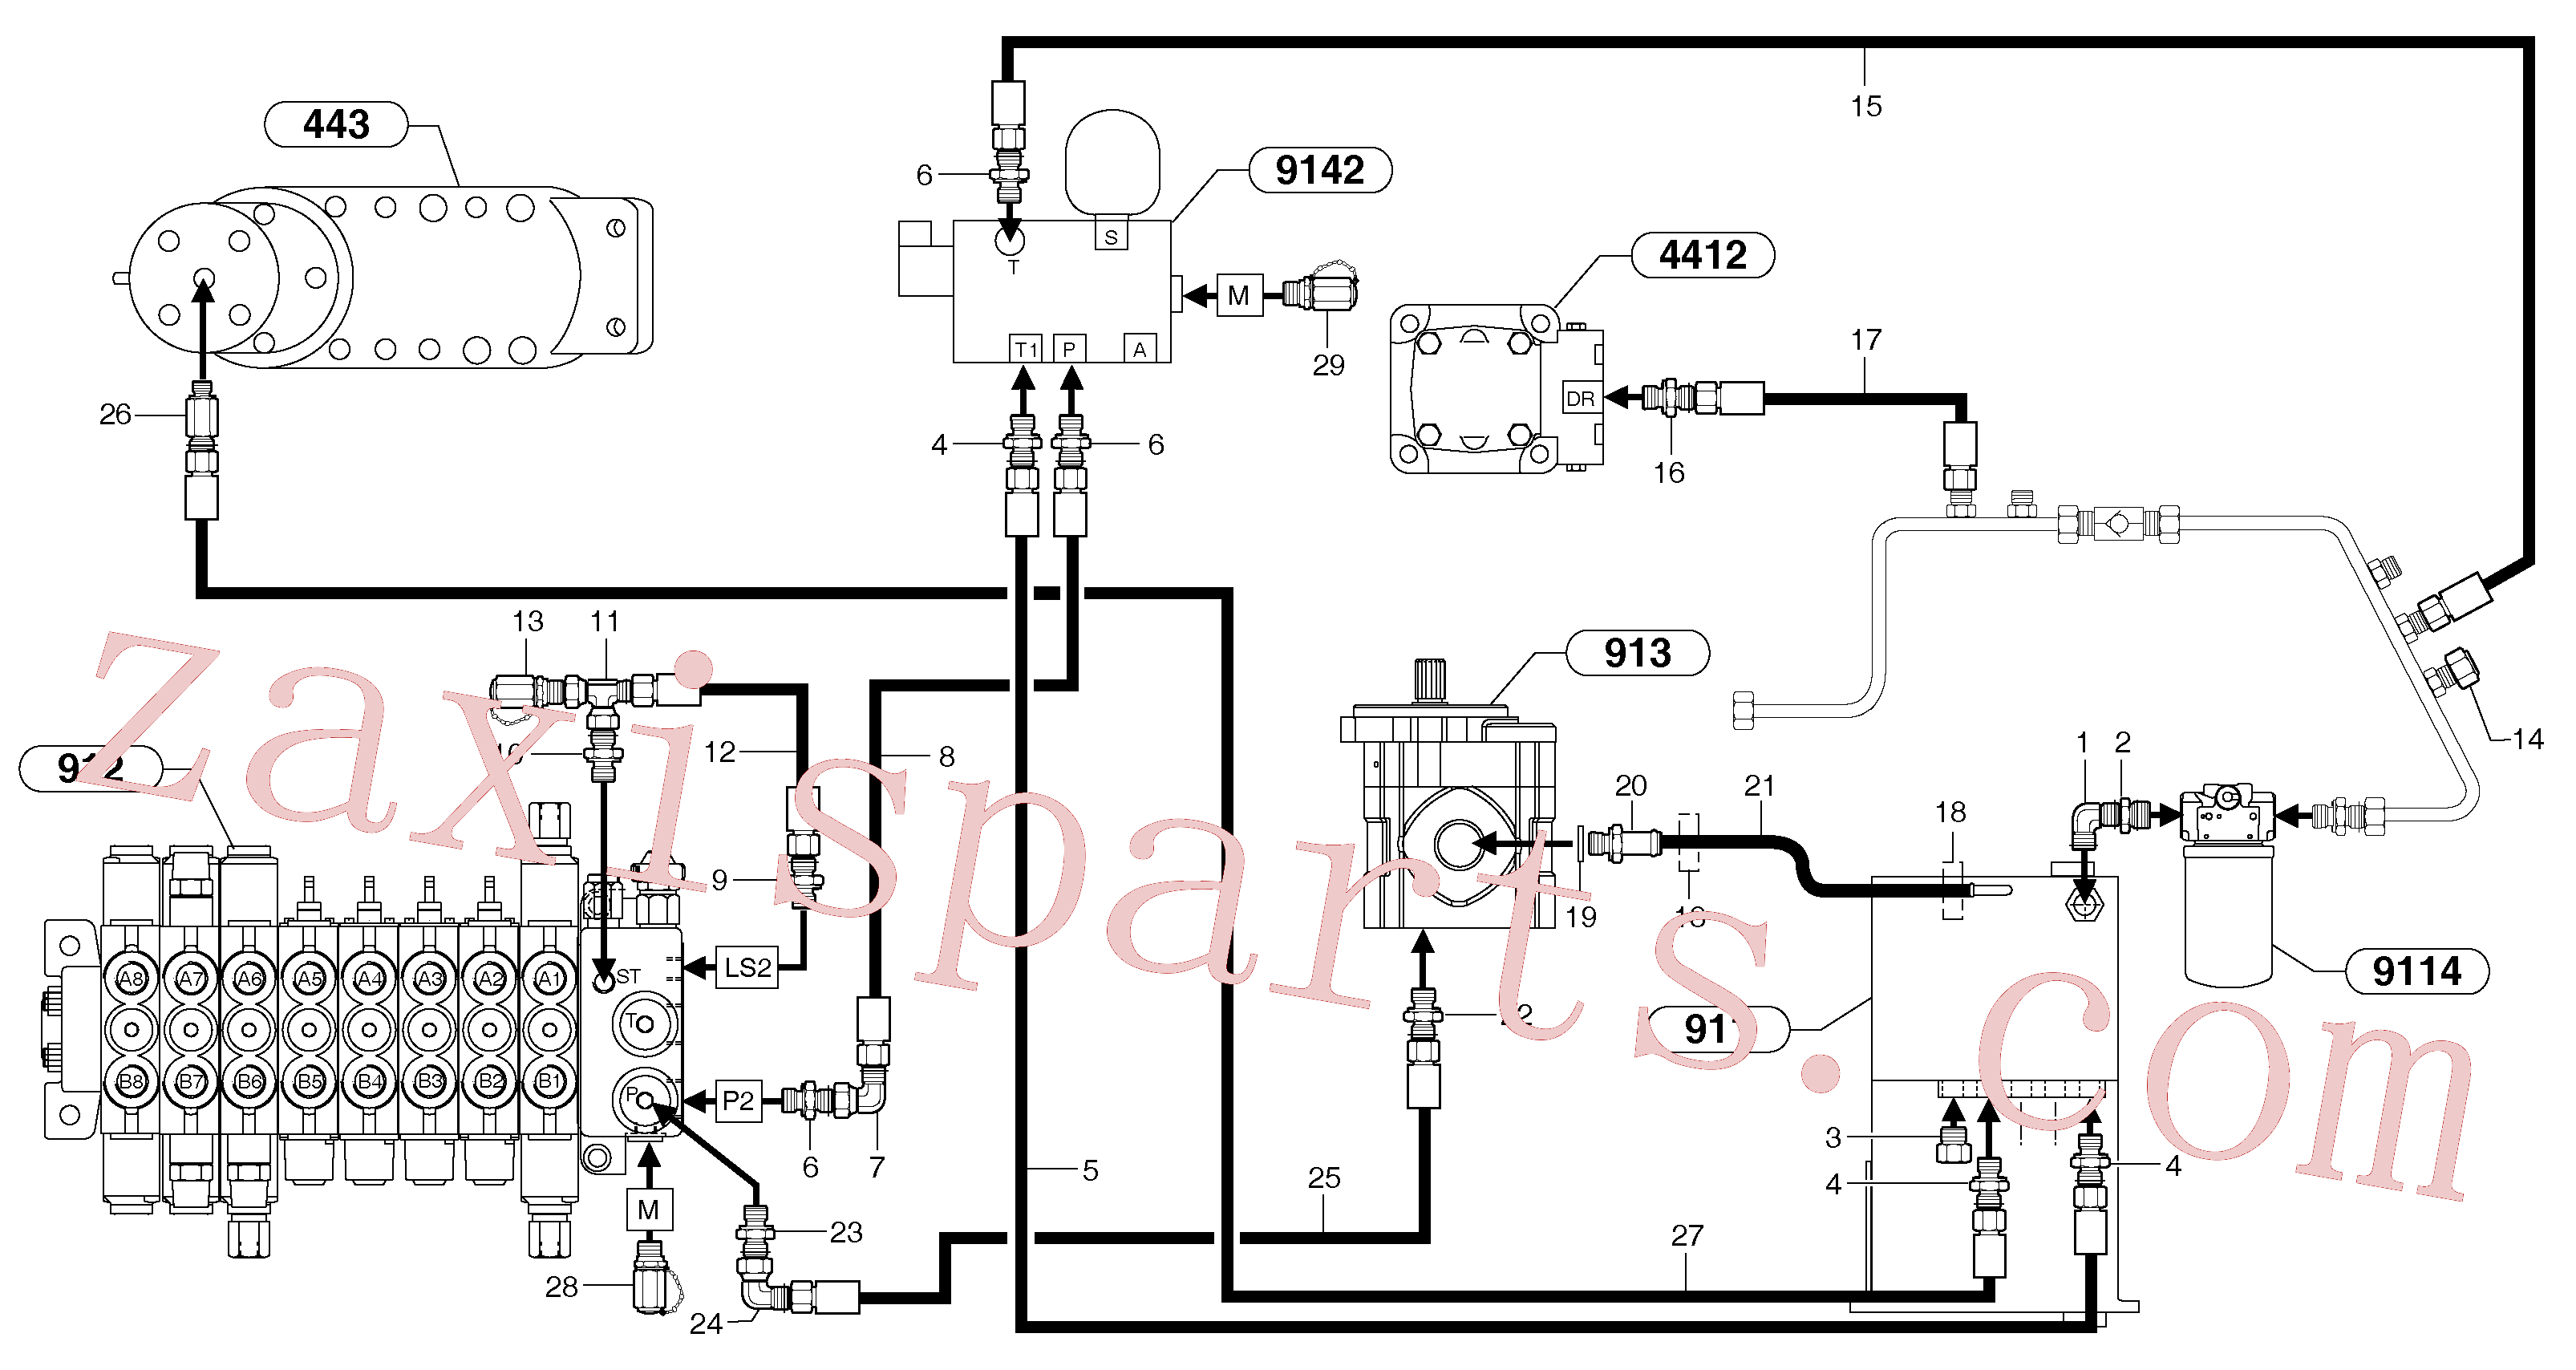 PJ4192437 for Volvo Attachments supply and return circuit(9112Z1 assembly)